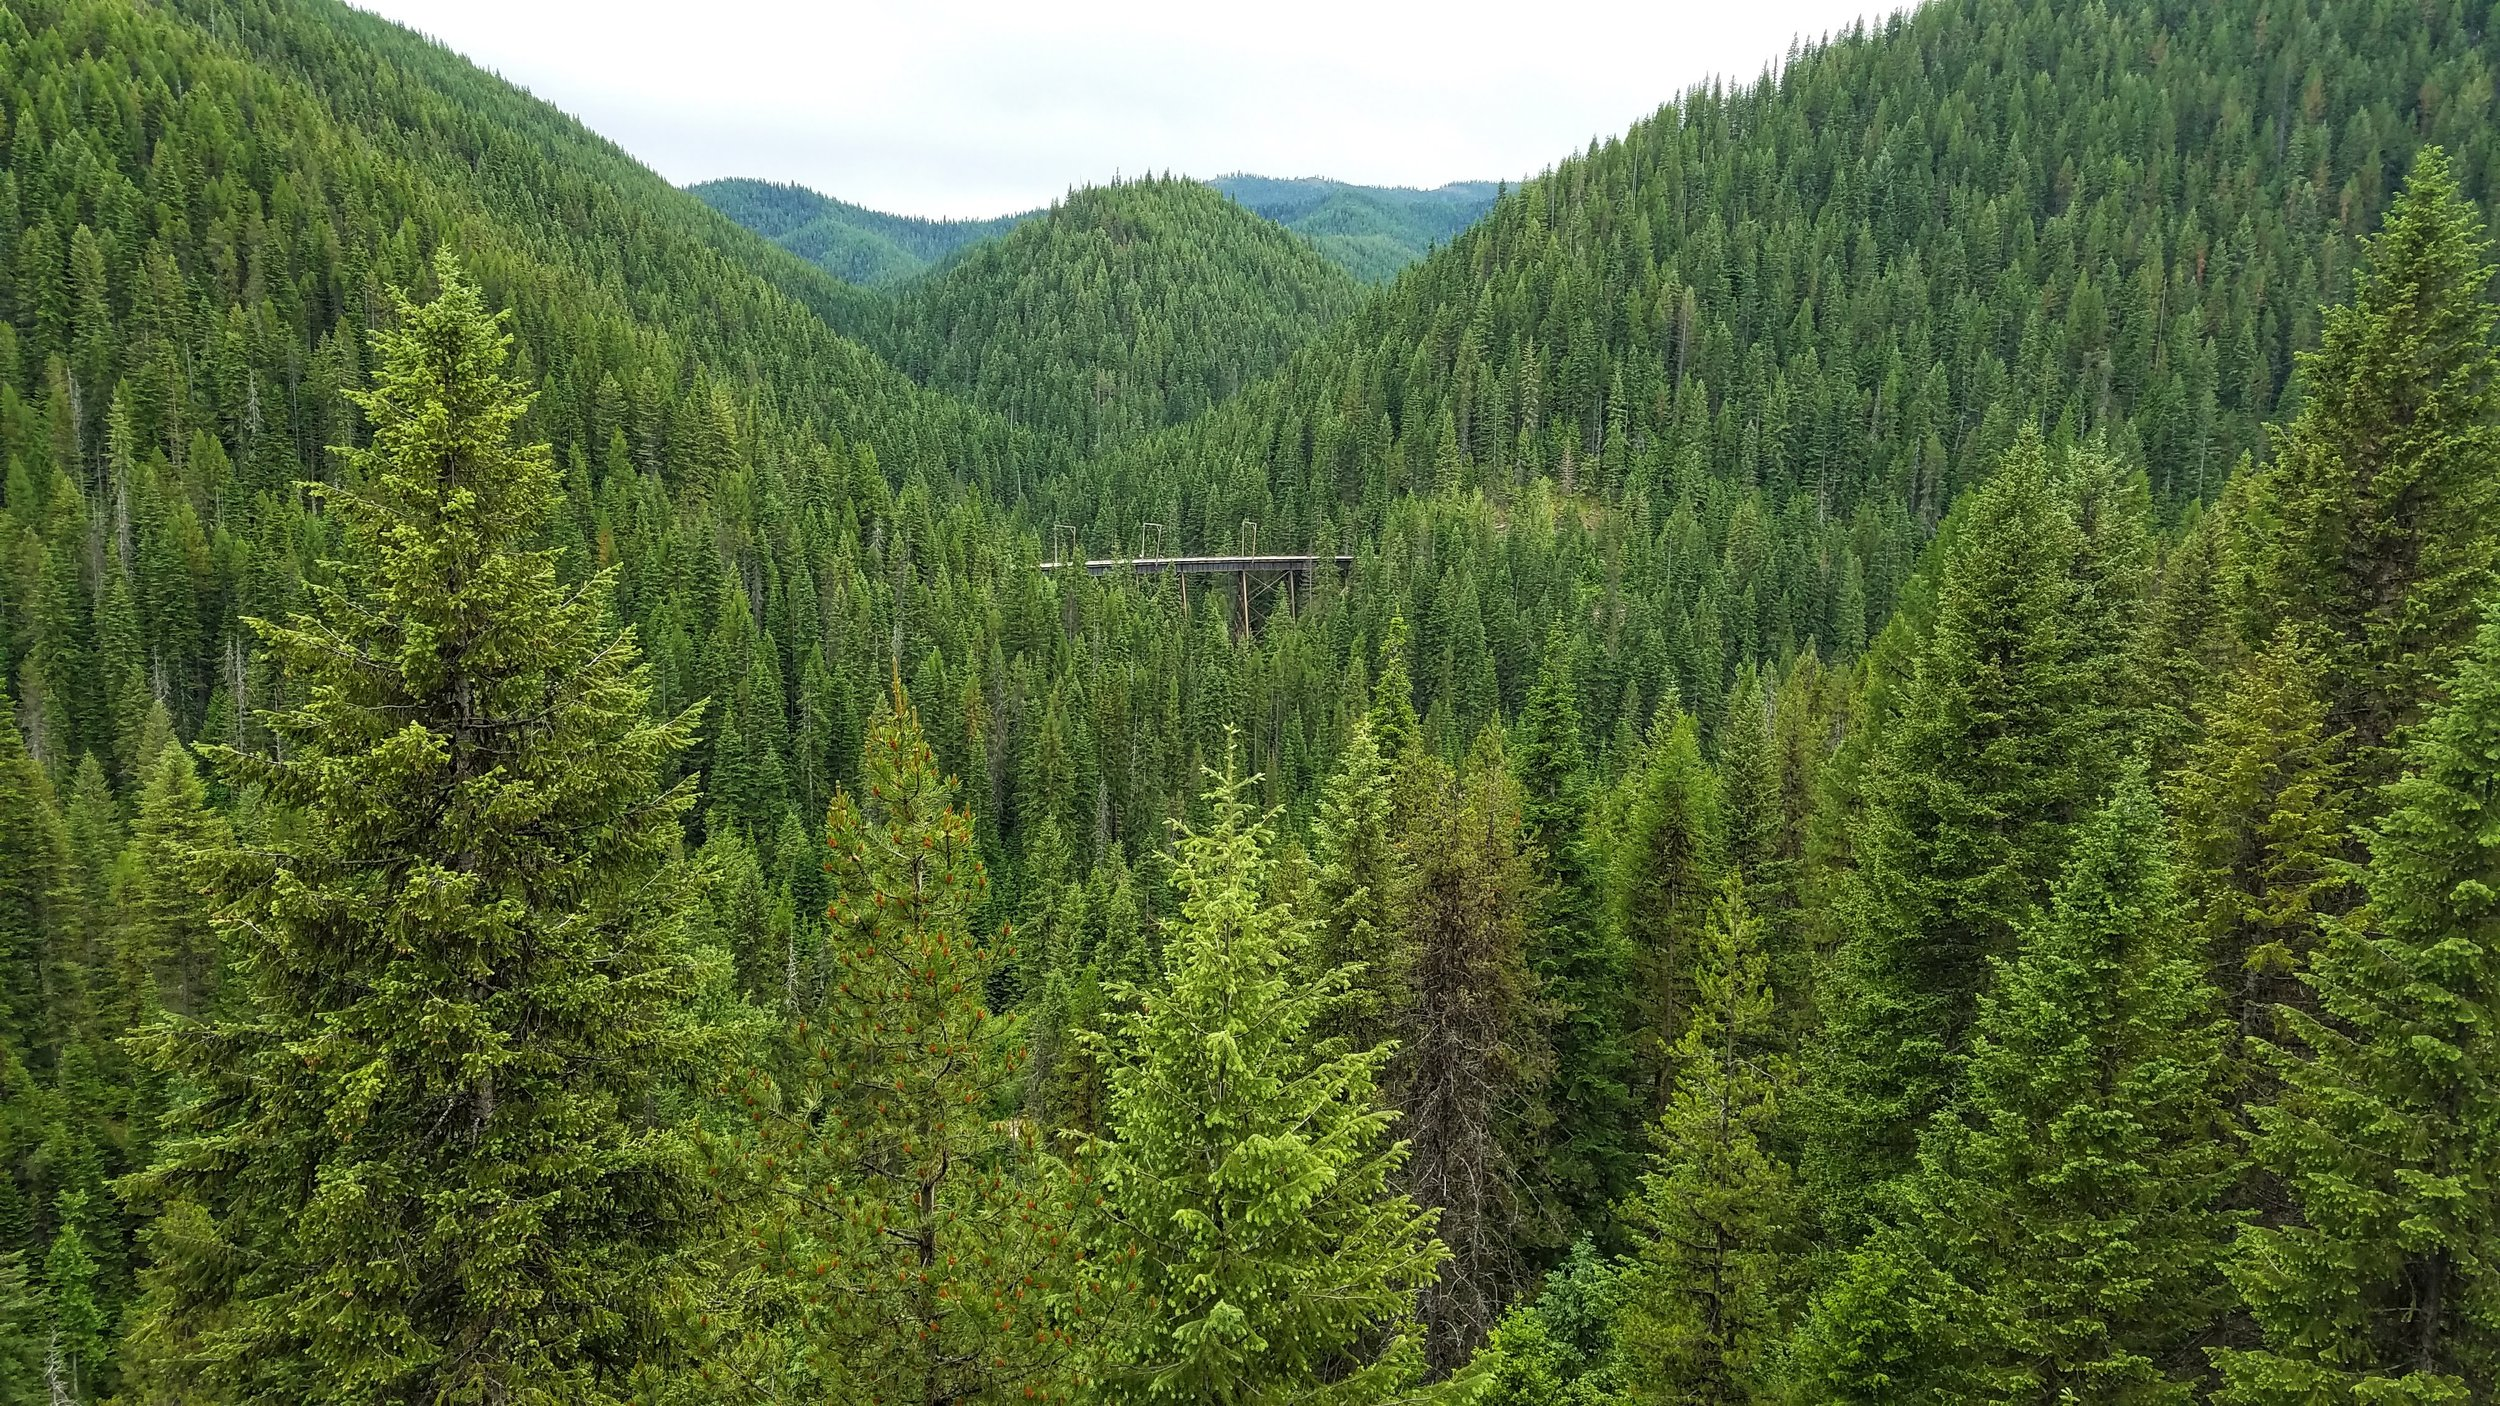 A view from our trestle to the next